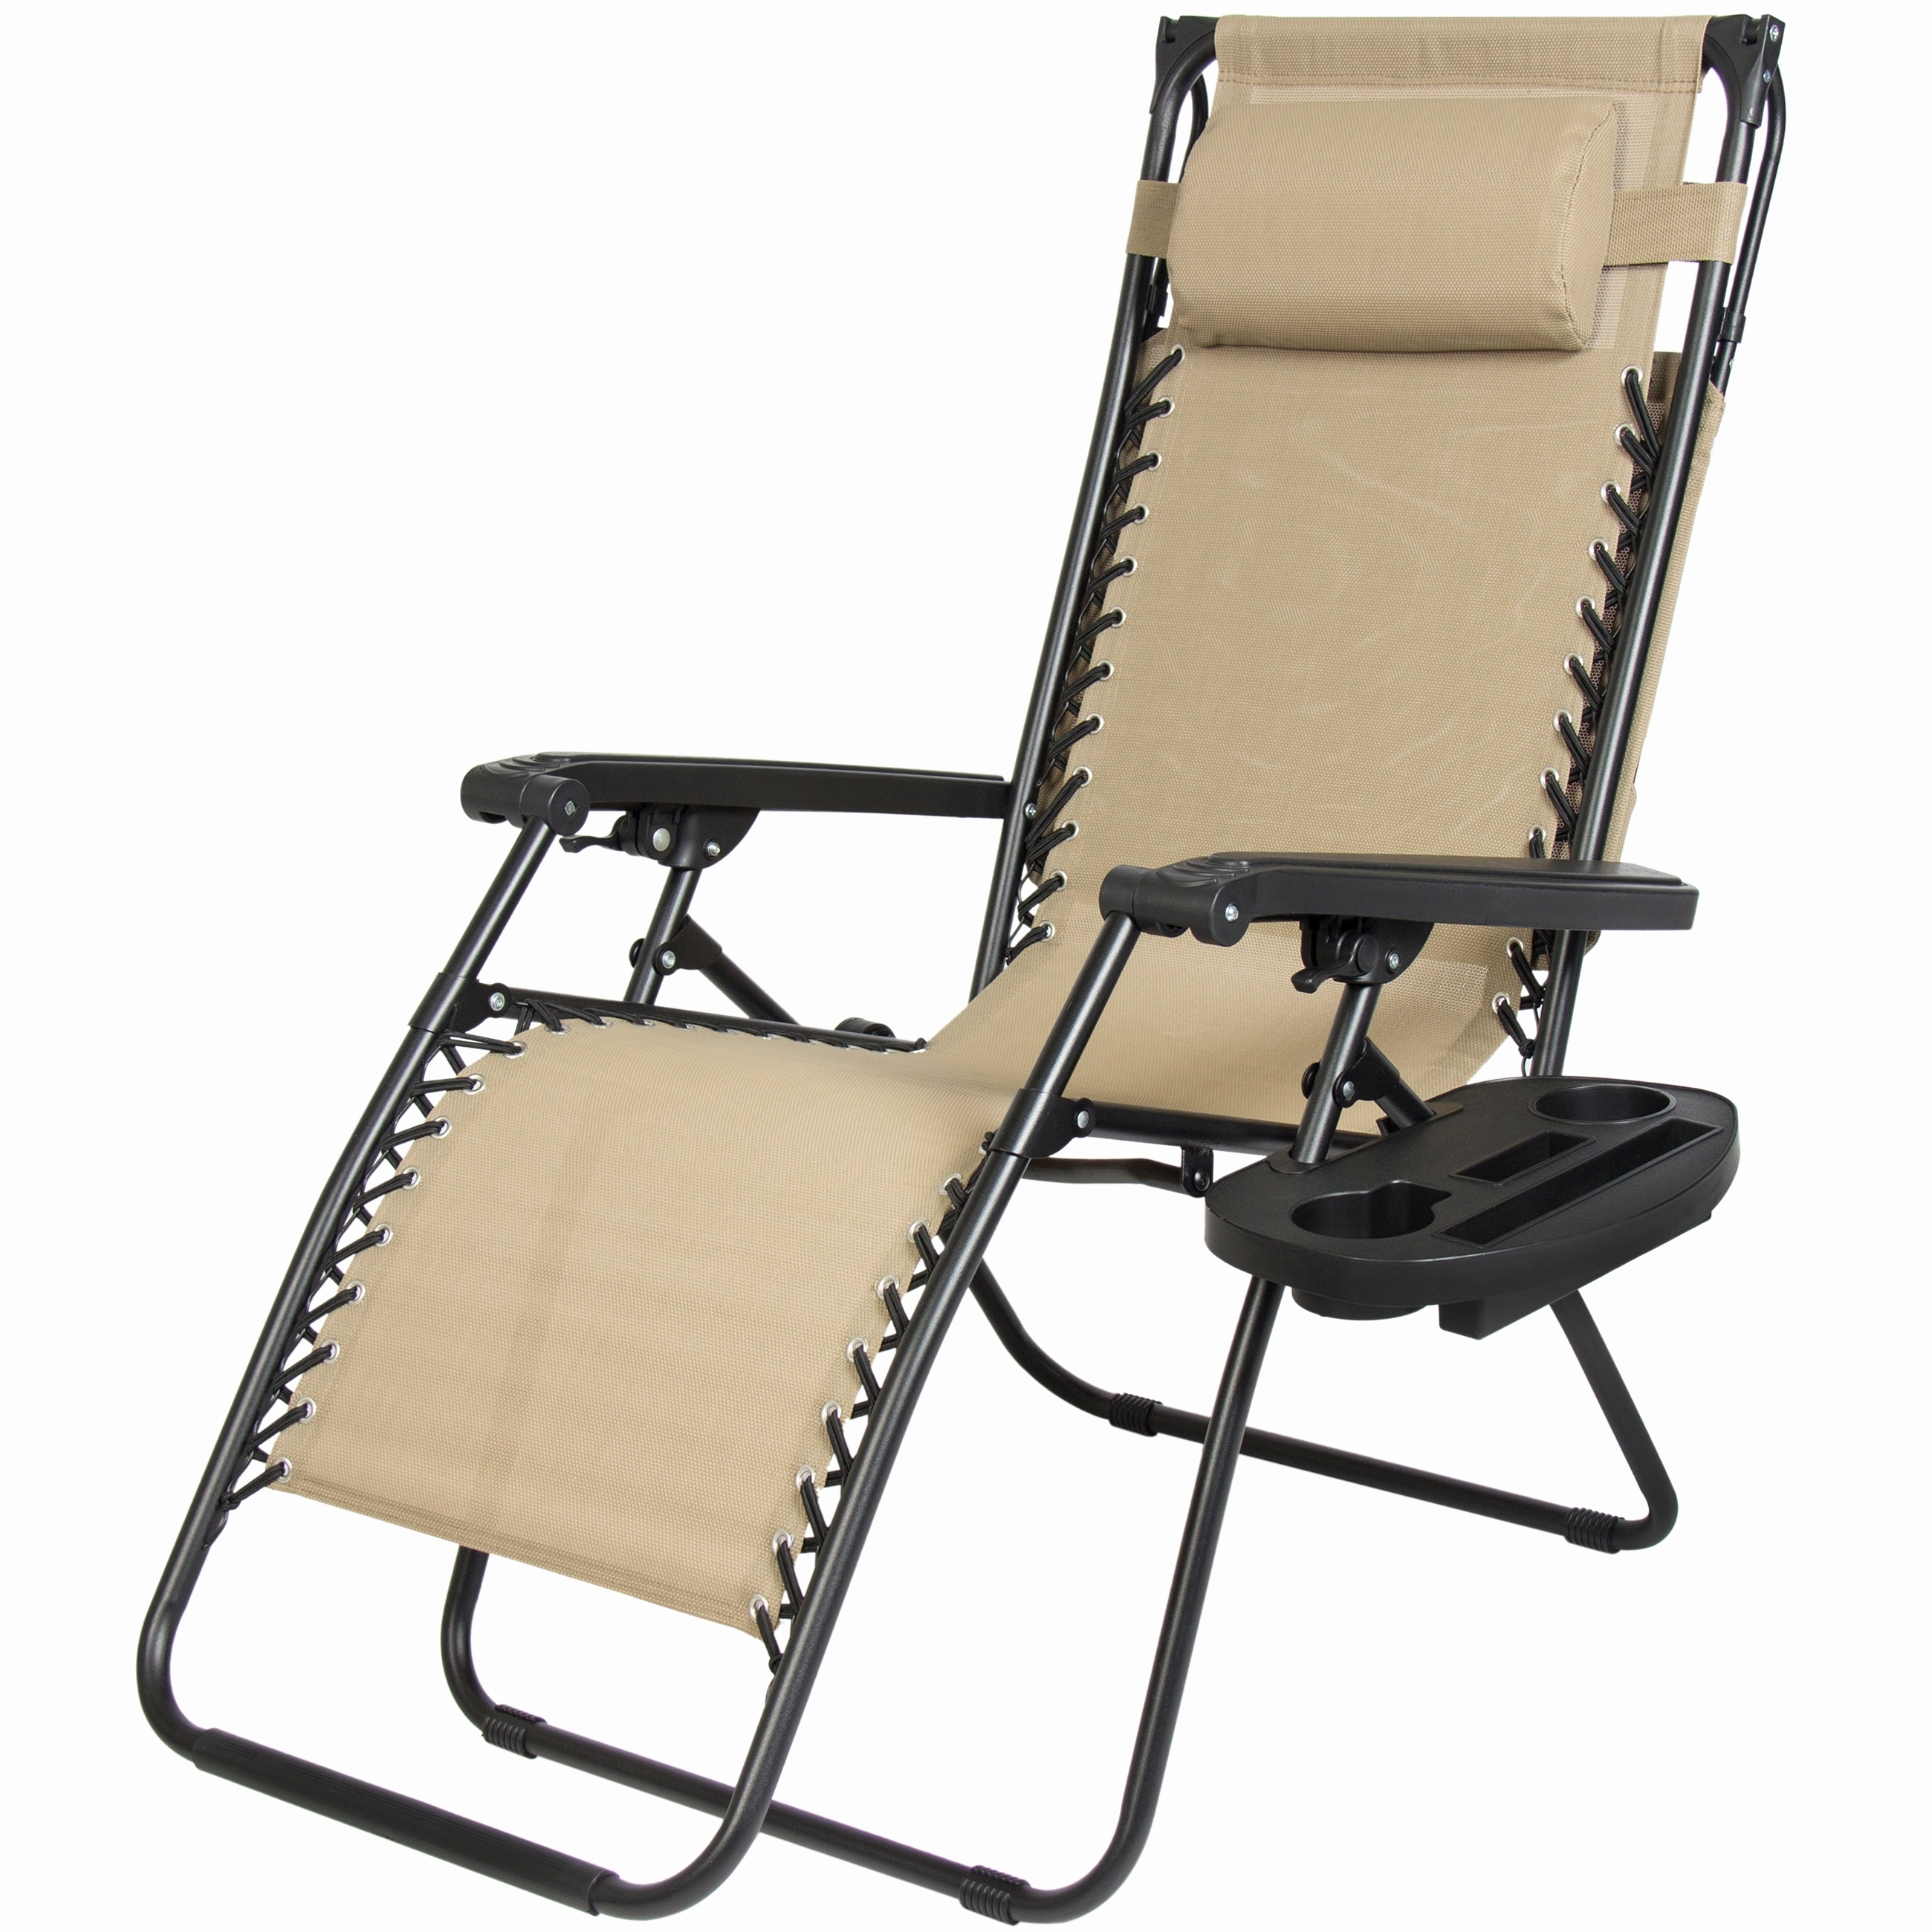 Favorite Lightweight Chaise Lounge Chairs For Outdoor : Folding Outdoor Lounge Chairs Outdoor Double Chaise (View 13 of 15)